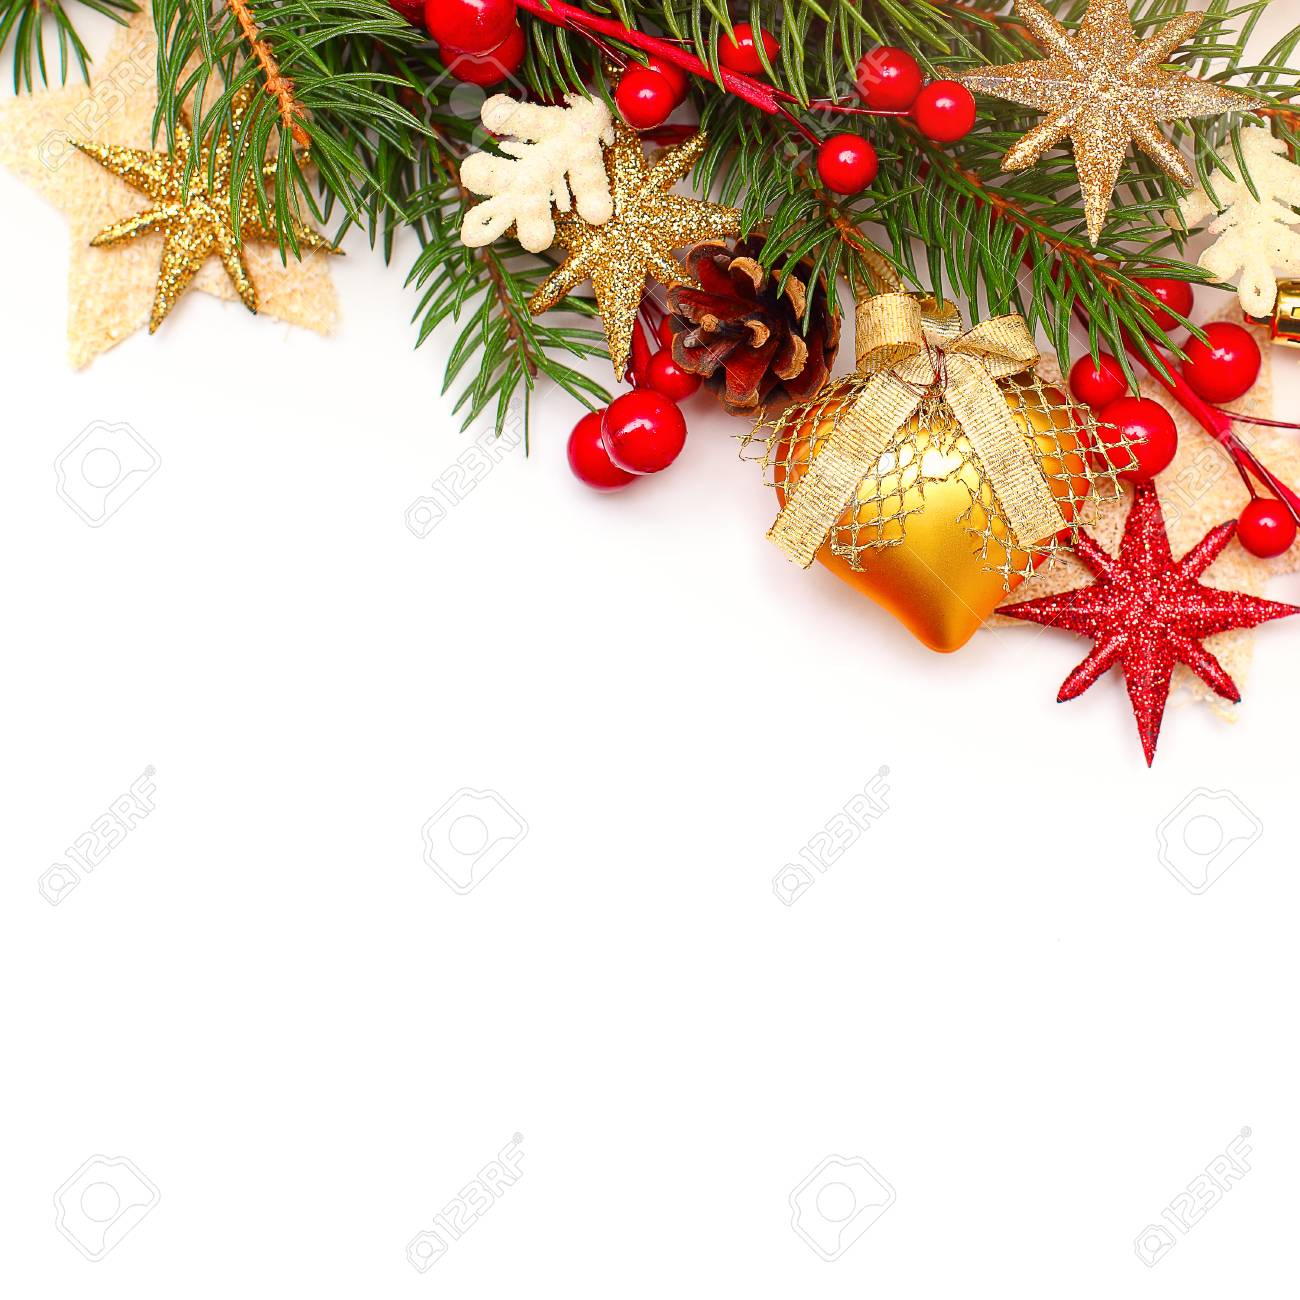 christmas background with xmas tree twig and decorations abstract christmas or new year border for